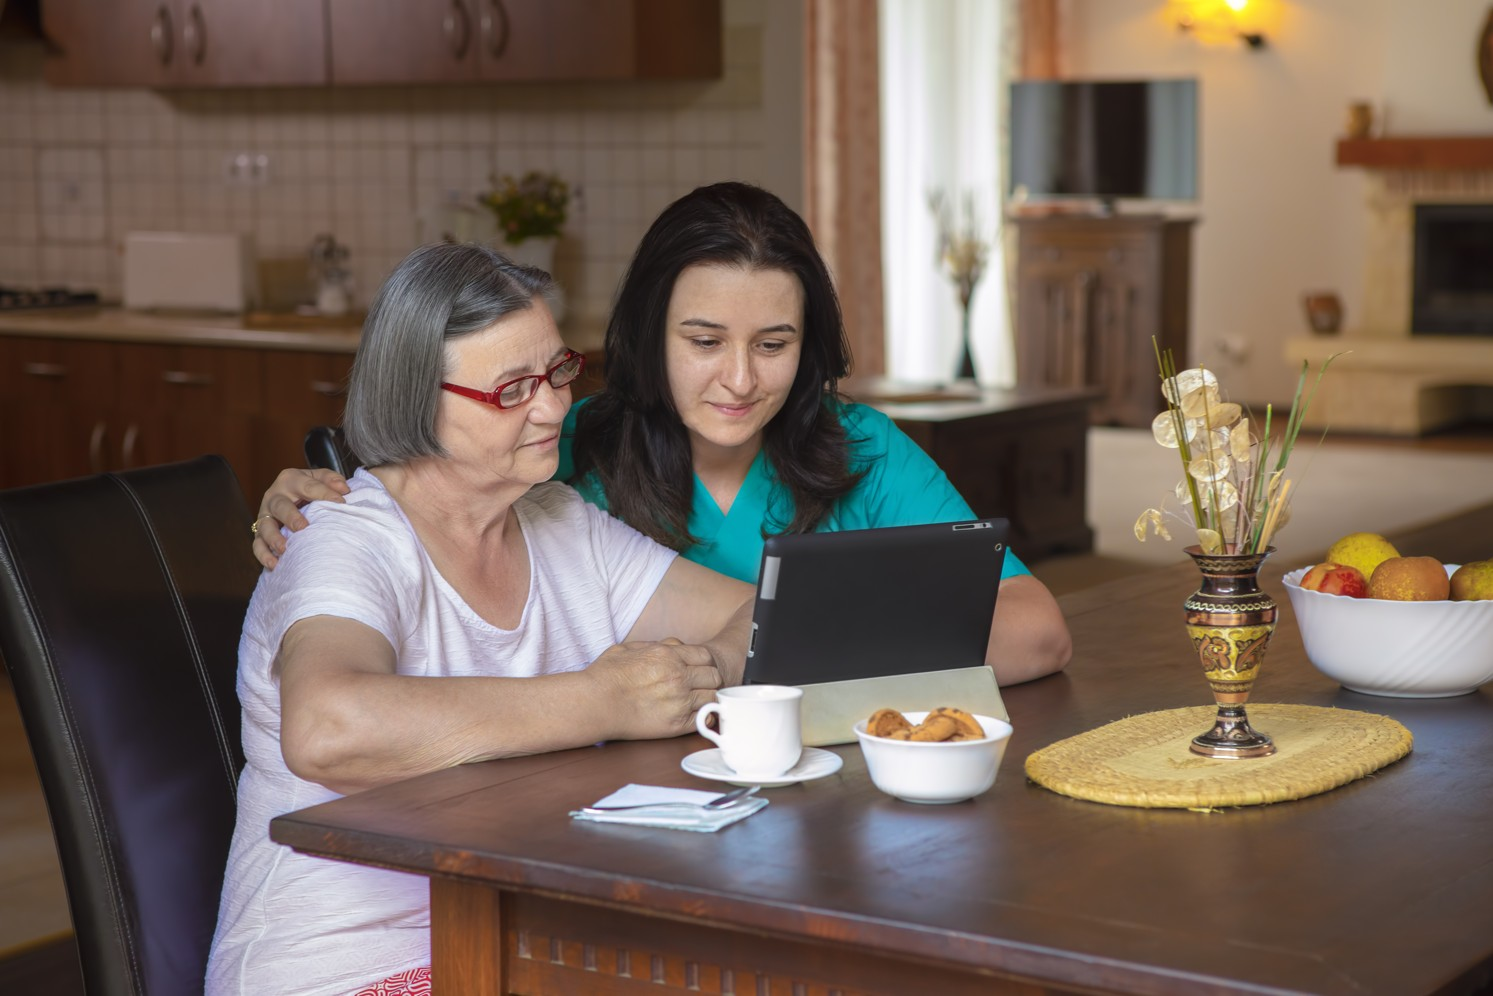 Assisting elderly with computer